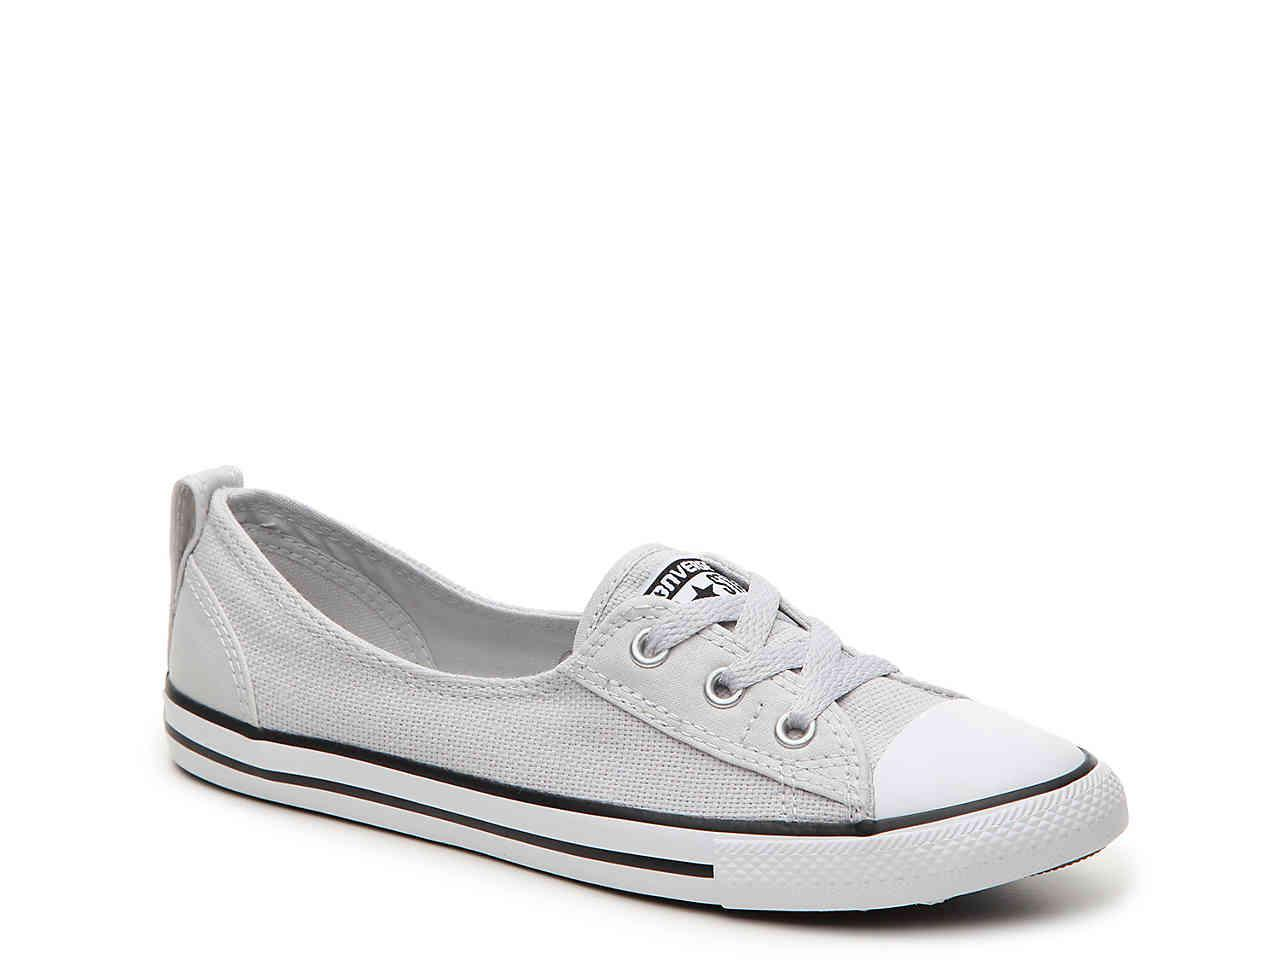 a9c2f0f8f3e Lyst - Converse Chuck Taylor All Star Dainty Ballet Slip-on Sneaker ...